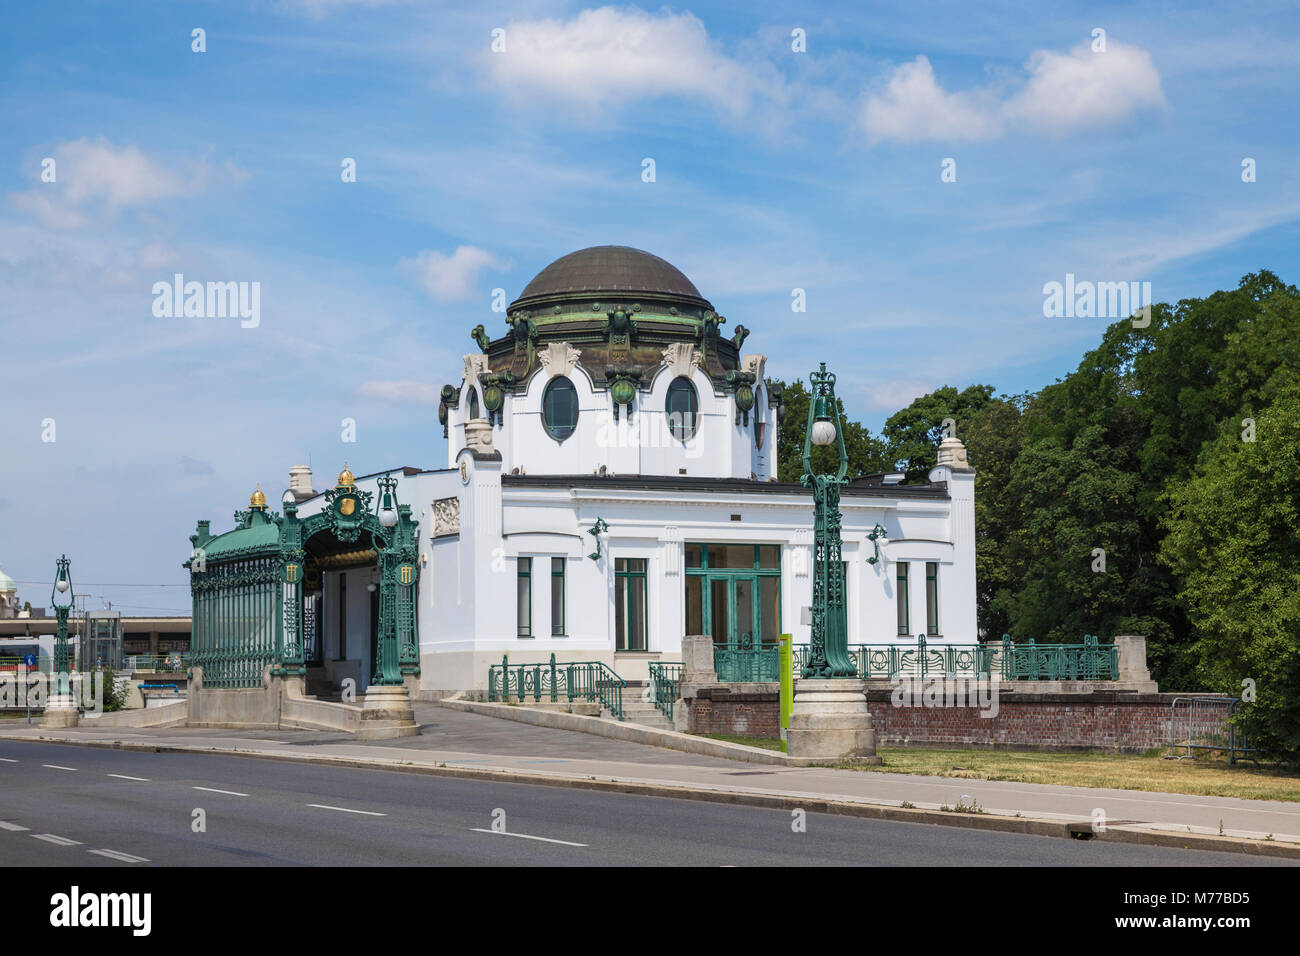 Otto Wagner's Imperial Court Pavilion at Hietzing station, Vienna, Austria, Europe - Stock Image